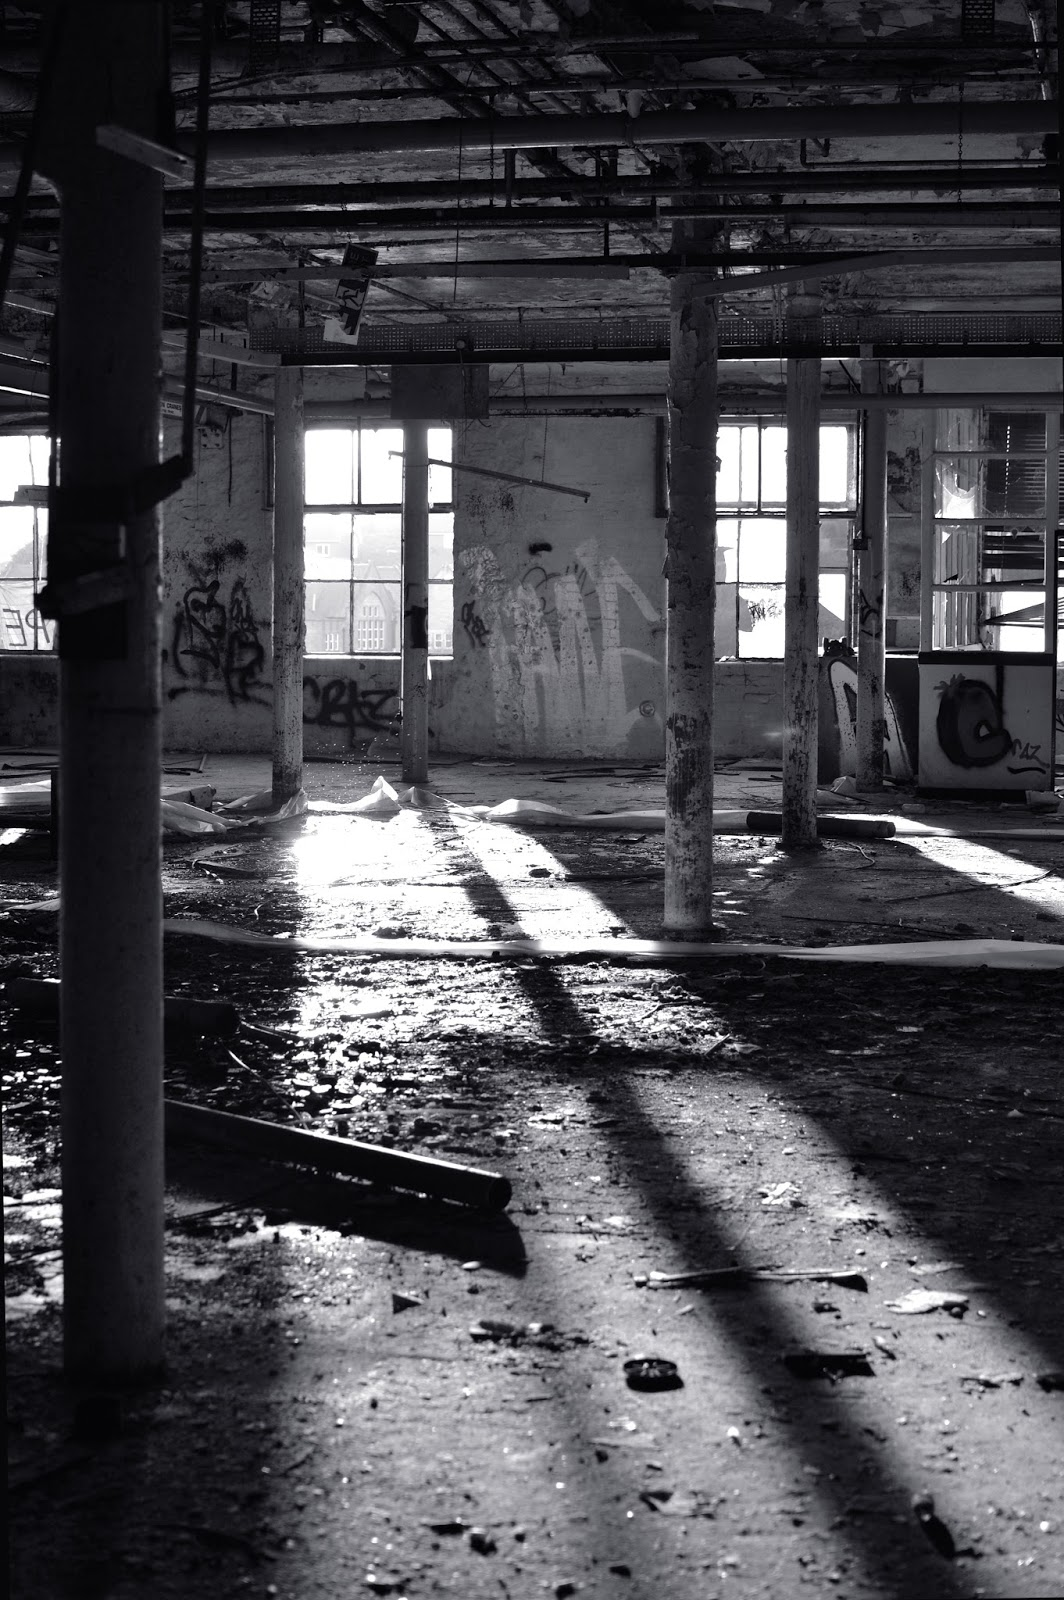 urbex, photography, black and white, tone, atmosphere, fothergill and harvey, rock nook mill, shadows, narrative, eerie, factory, abandoned, derelict, light, natural light, society, greater Manchester, Littleborough, industrial revolution, ruins, apocalypse, separation, place, explore, adventure,